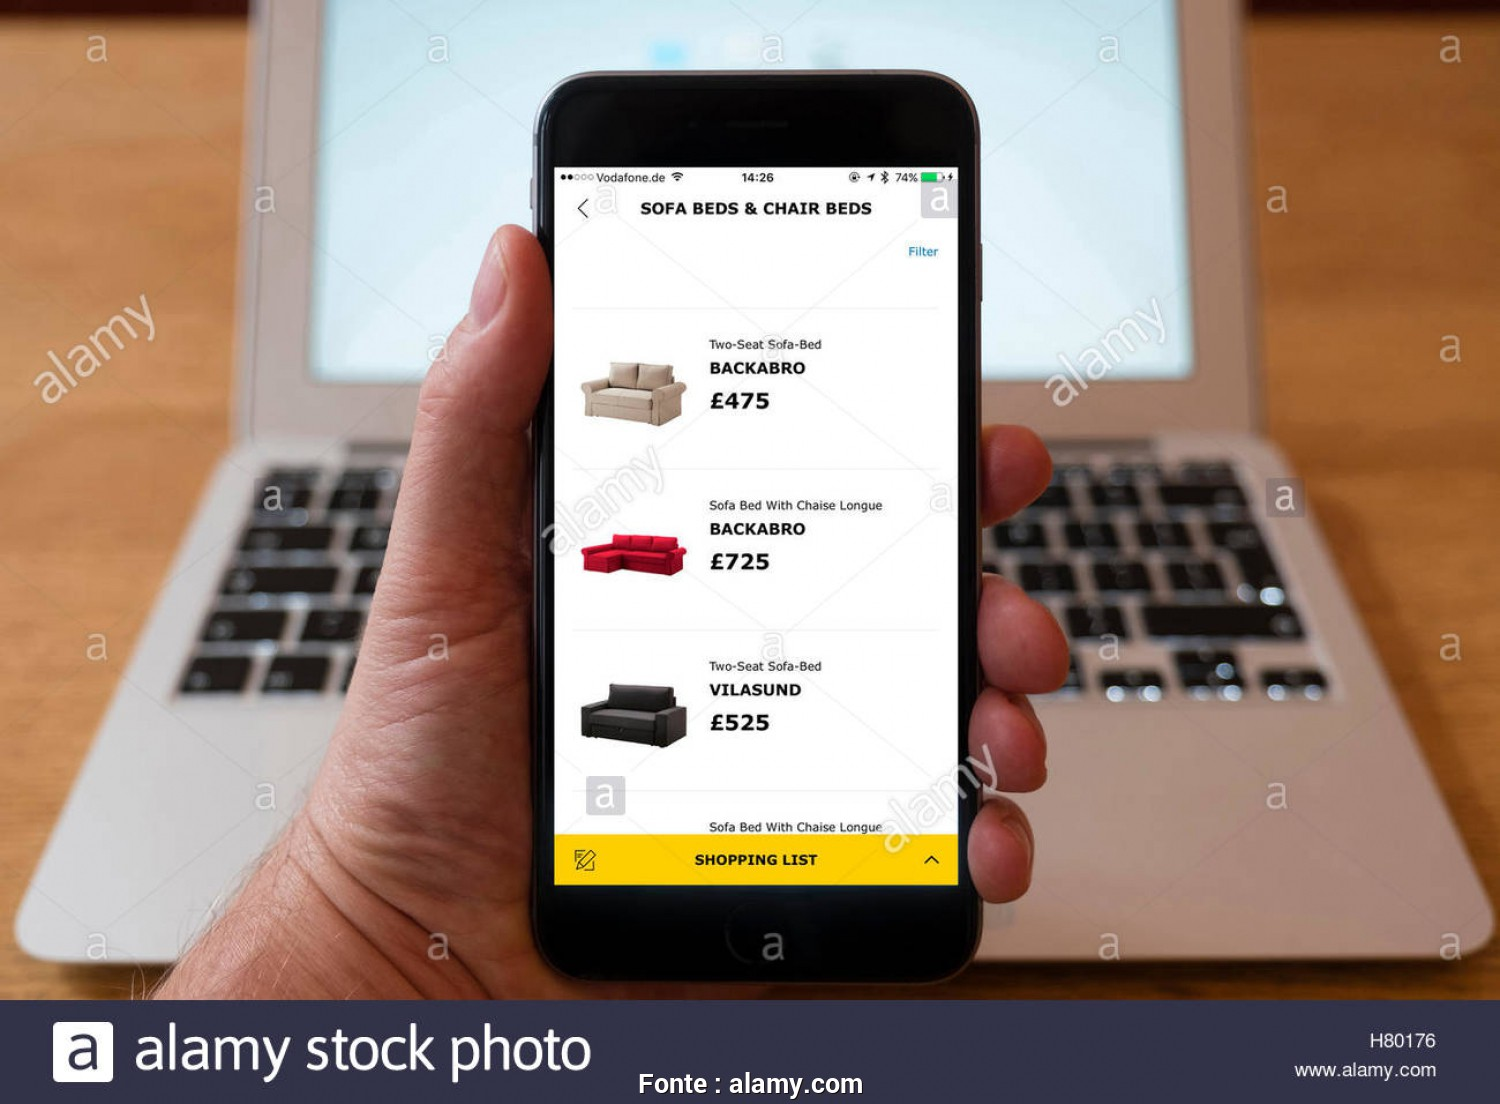 Ikea Online Backabro, A Buon Mercato Using IPhone Smartphone To Display Sofas, Sale In IKEA Online Home Furnishing Superstore